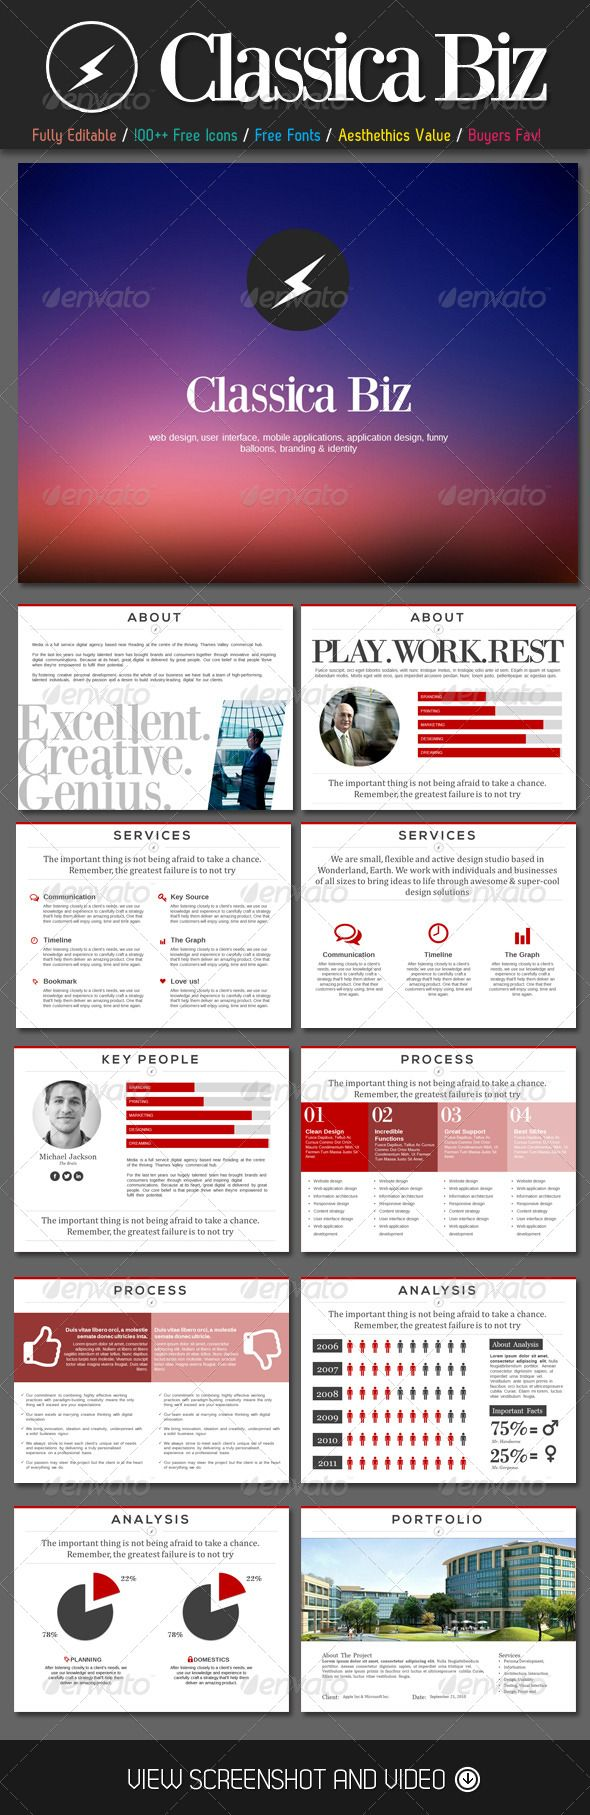 Classica Biz PowerPoint Template - GraphicRiver Item for Sale